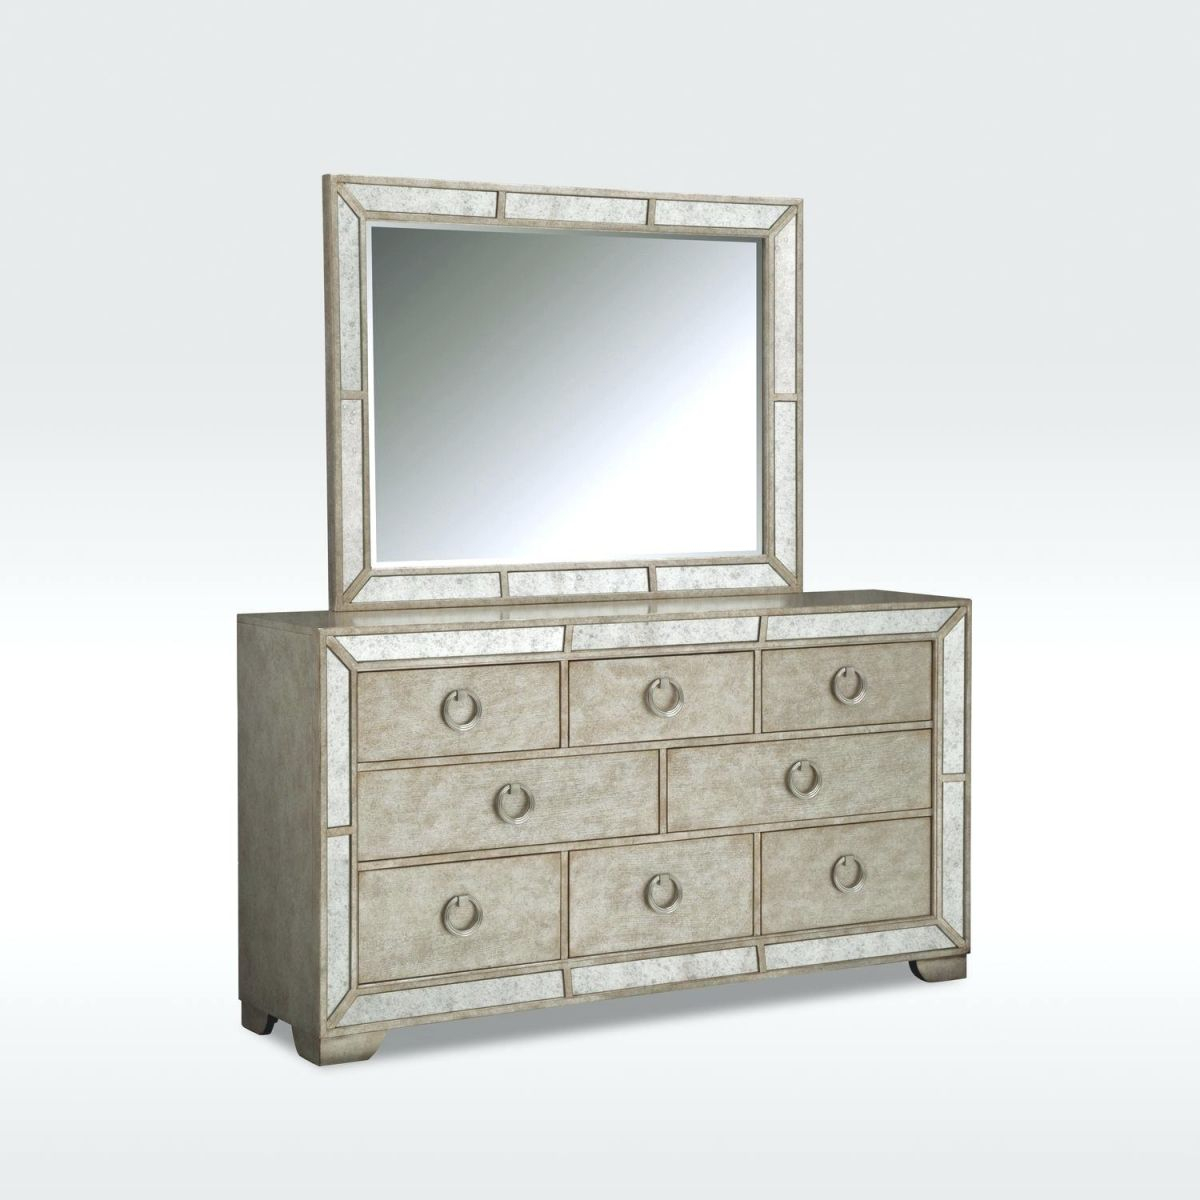 Value City Furniture Wall Mirrors Value City Furniture in Best of Value City Furniture Bedroom Set